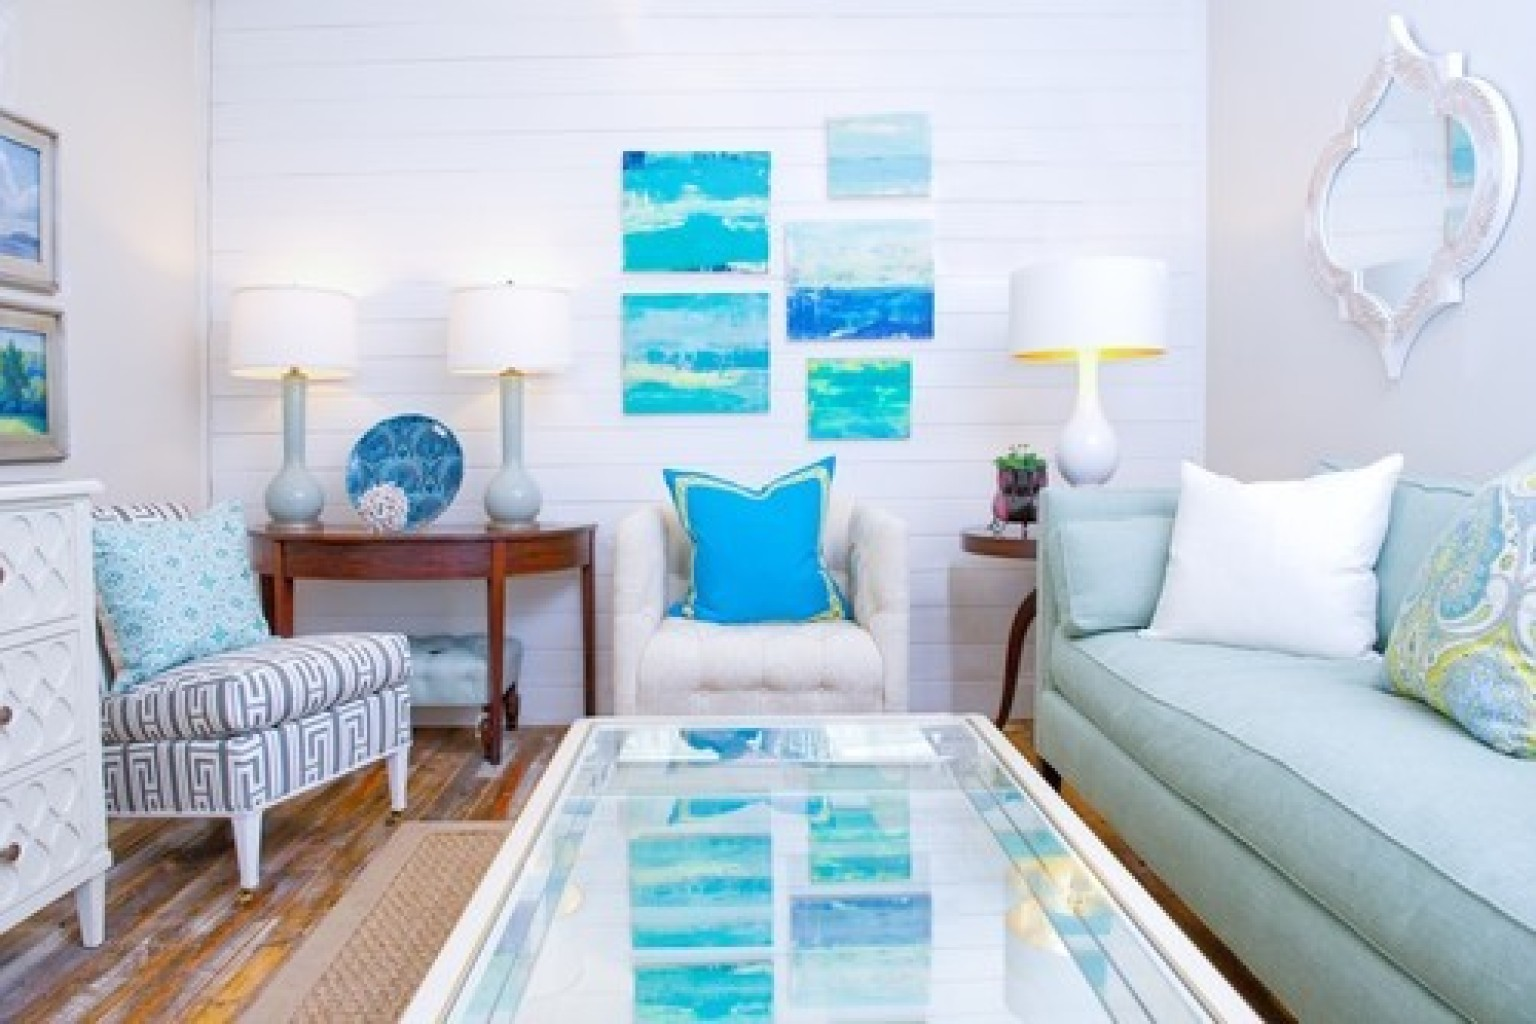 Ocean Inspired Decorating 8 Beach Homes That Don 39t Come Close To Making Us Seasick